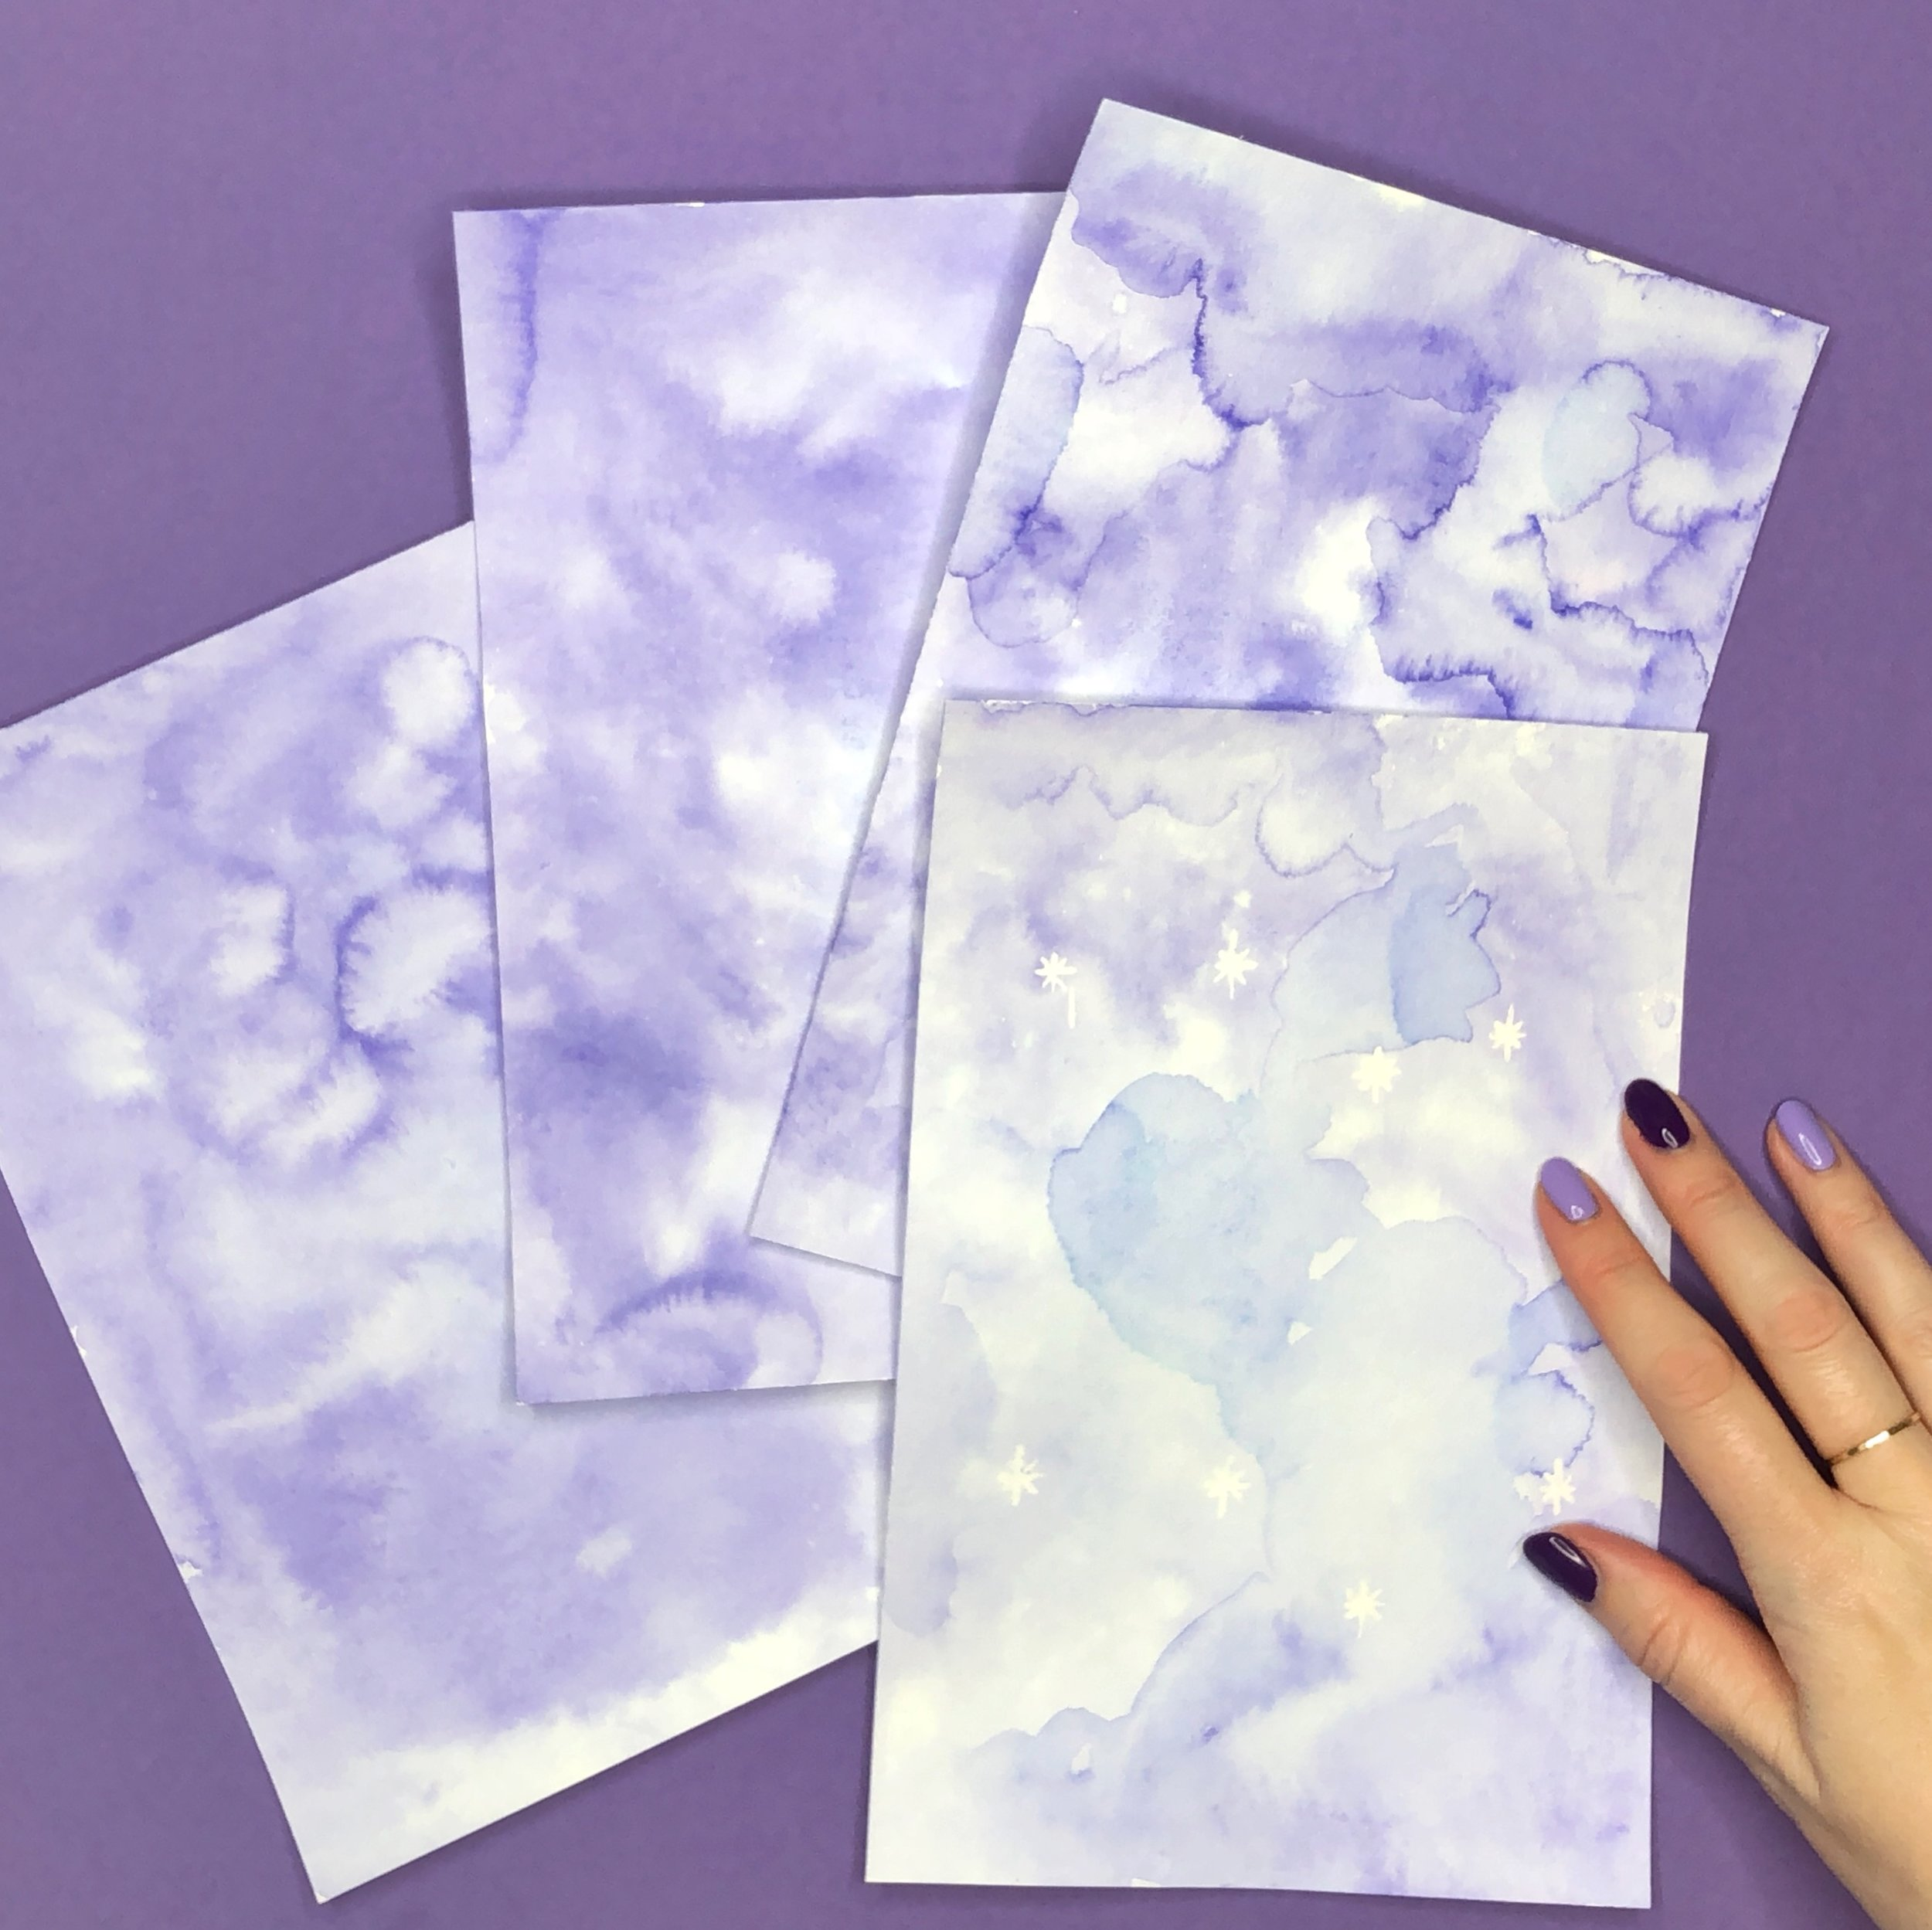 Easy to Make Ultra Violet Nursery Wall Art by Jessica Mack of BrownPaperBunny